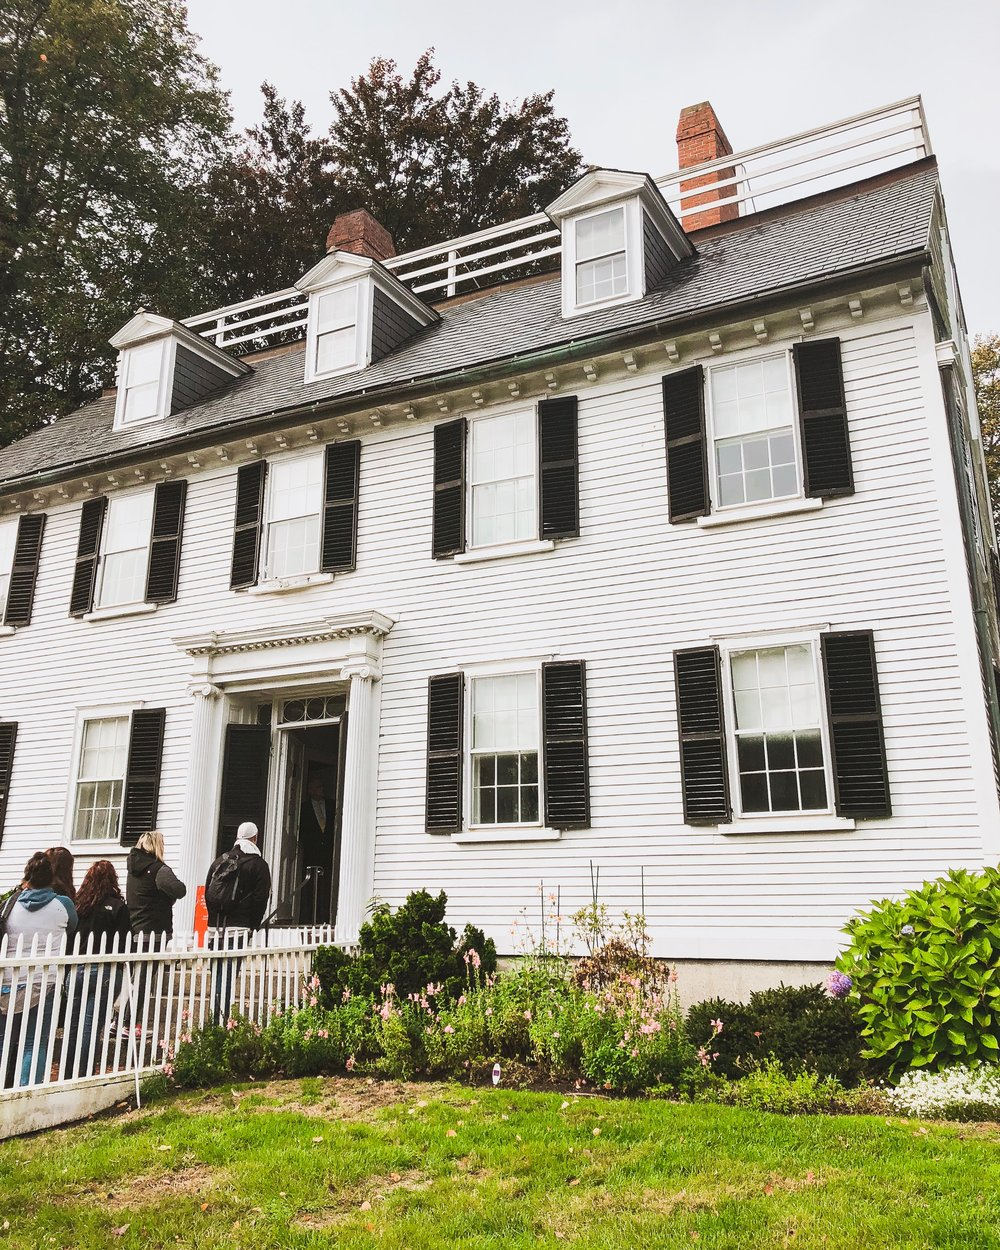 Salem, Massachusetts Travel Guide: Hocus Pocus Sites